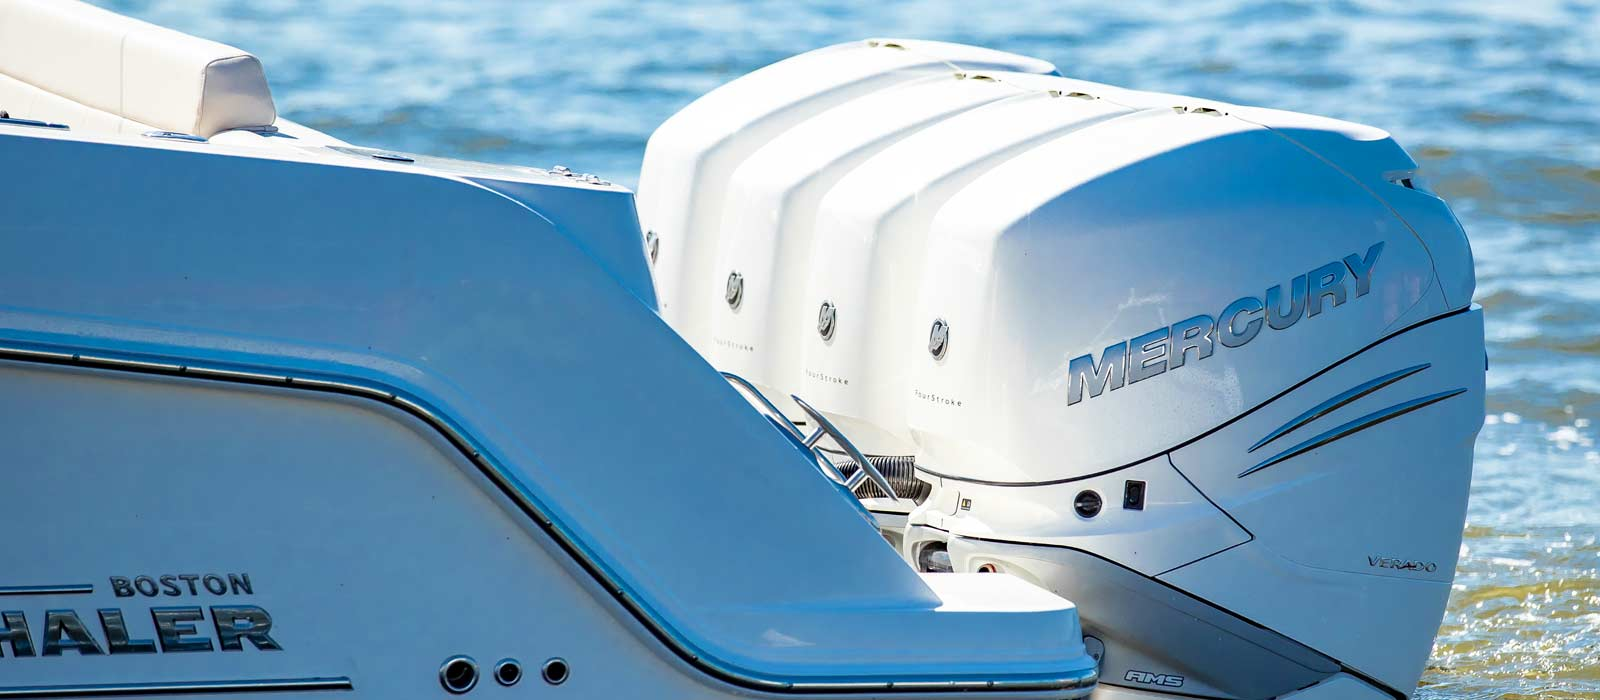 A Basic Guide to Troubleshooting Common Outboard Motor Problems